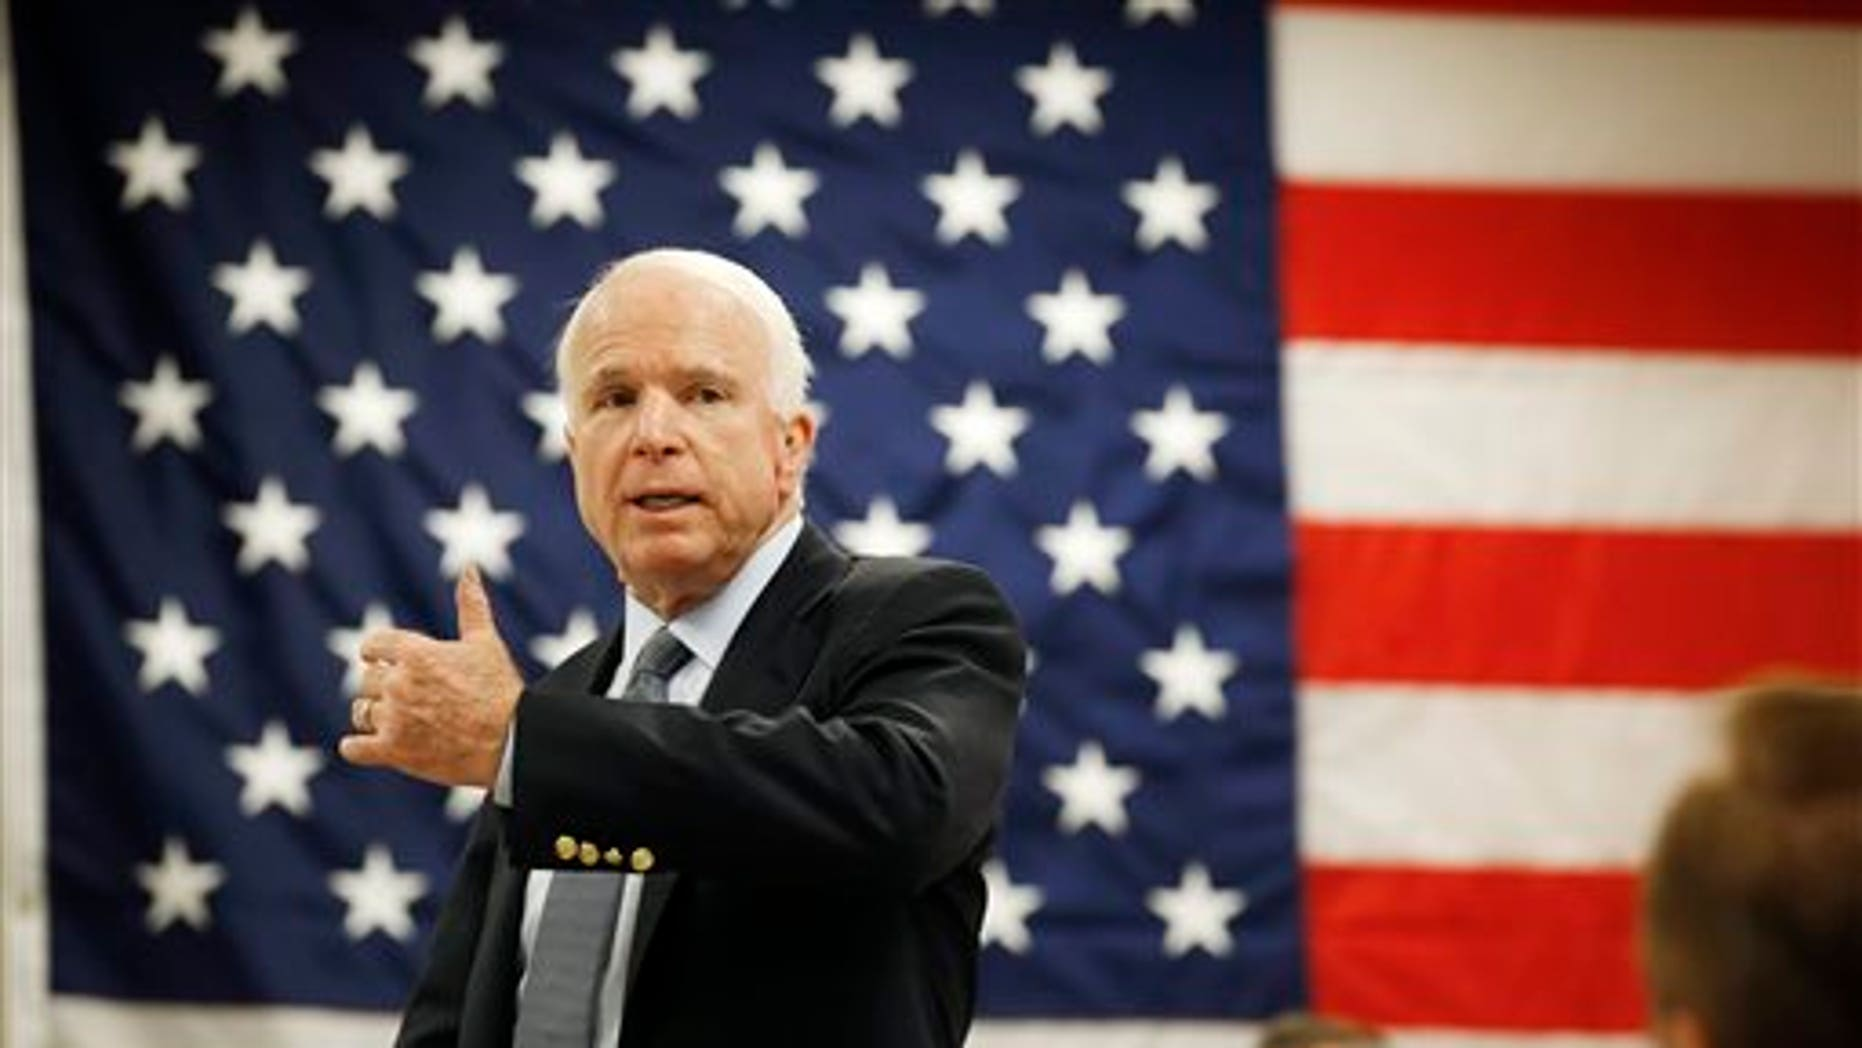 Tuesday, June 30, Sen. John McCain, R-Ariz., speaks with employees at Robertson Fuel Systems, in Tempe, Arizona.